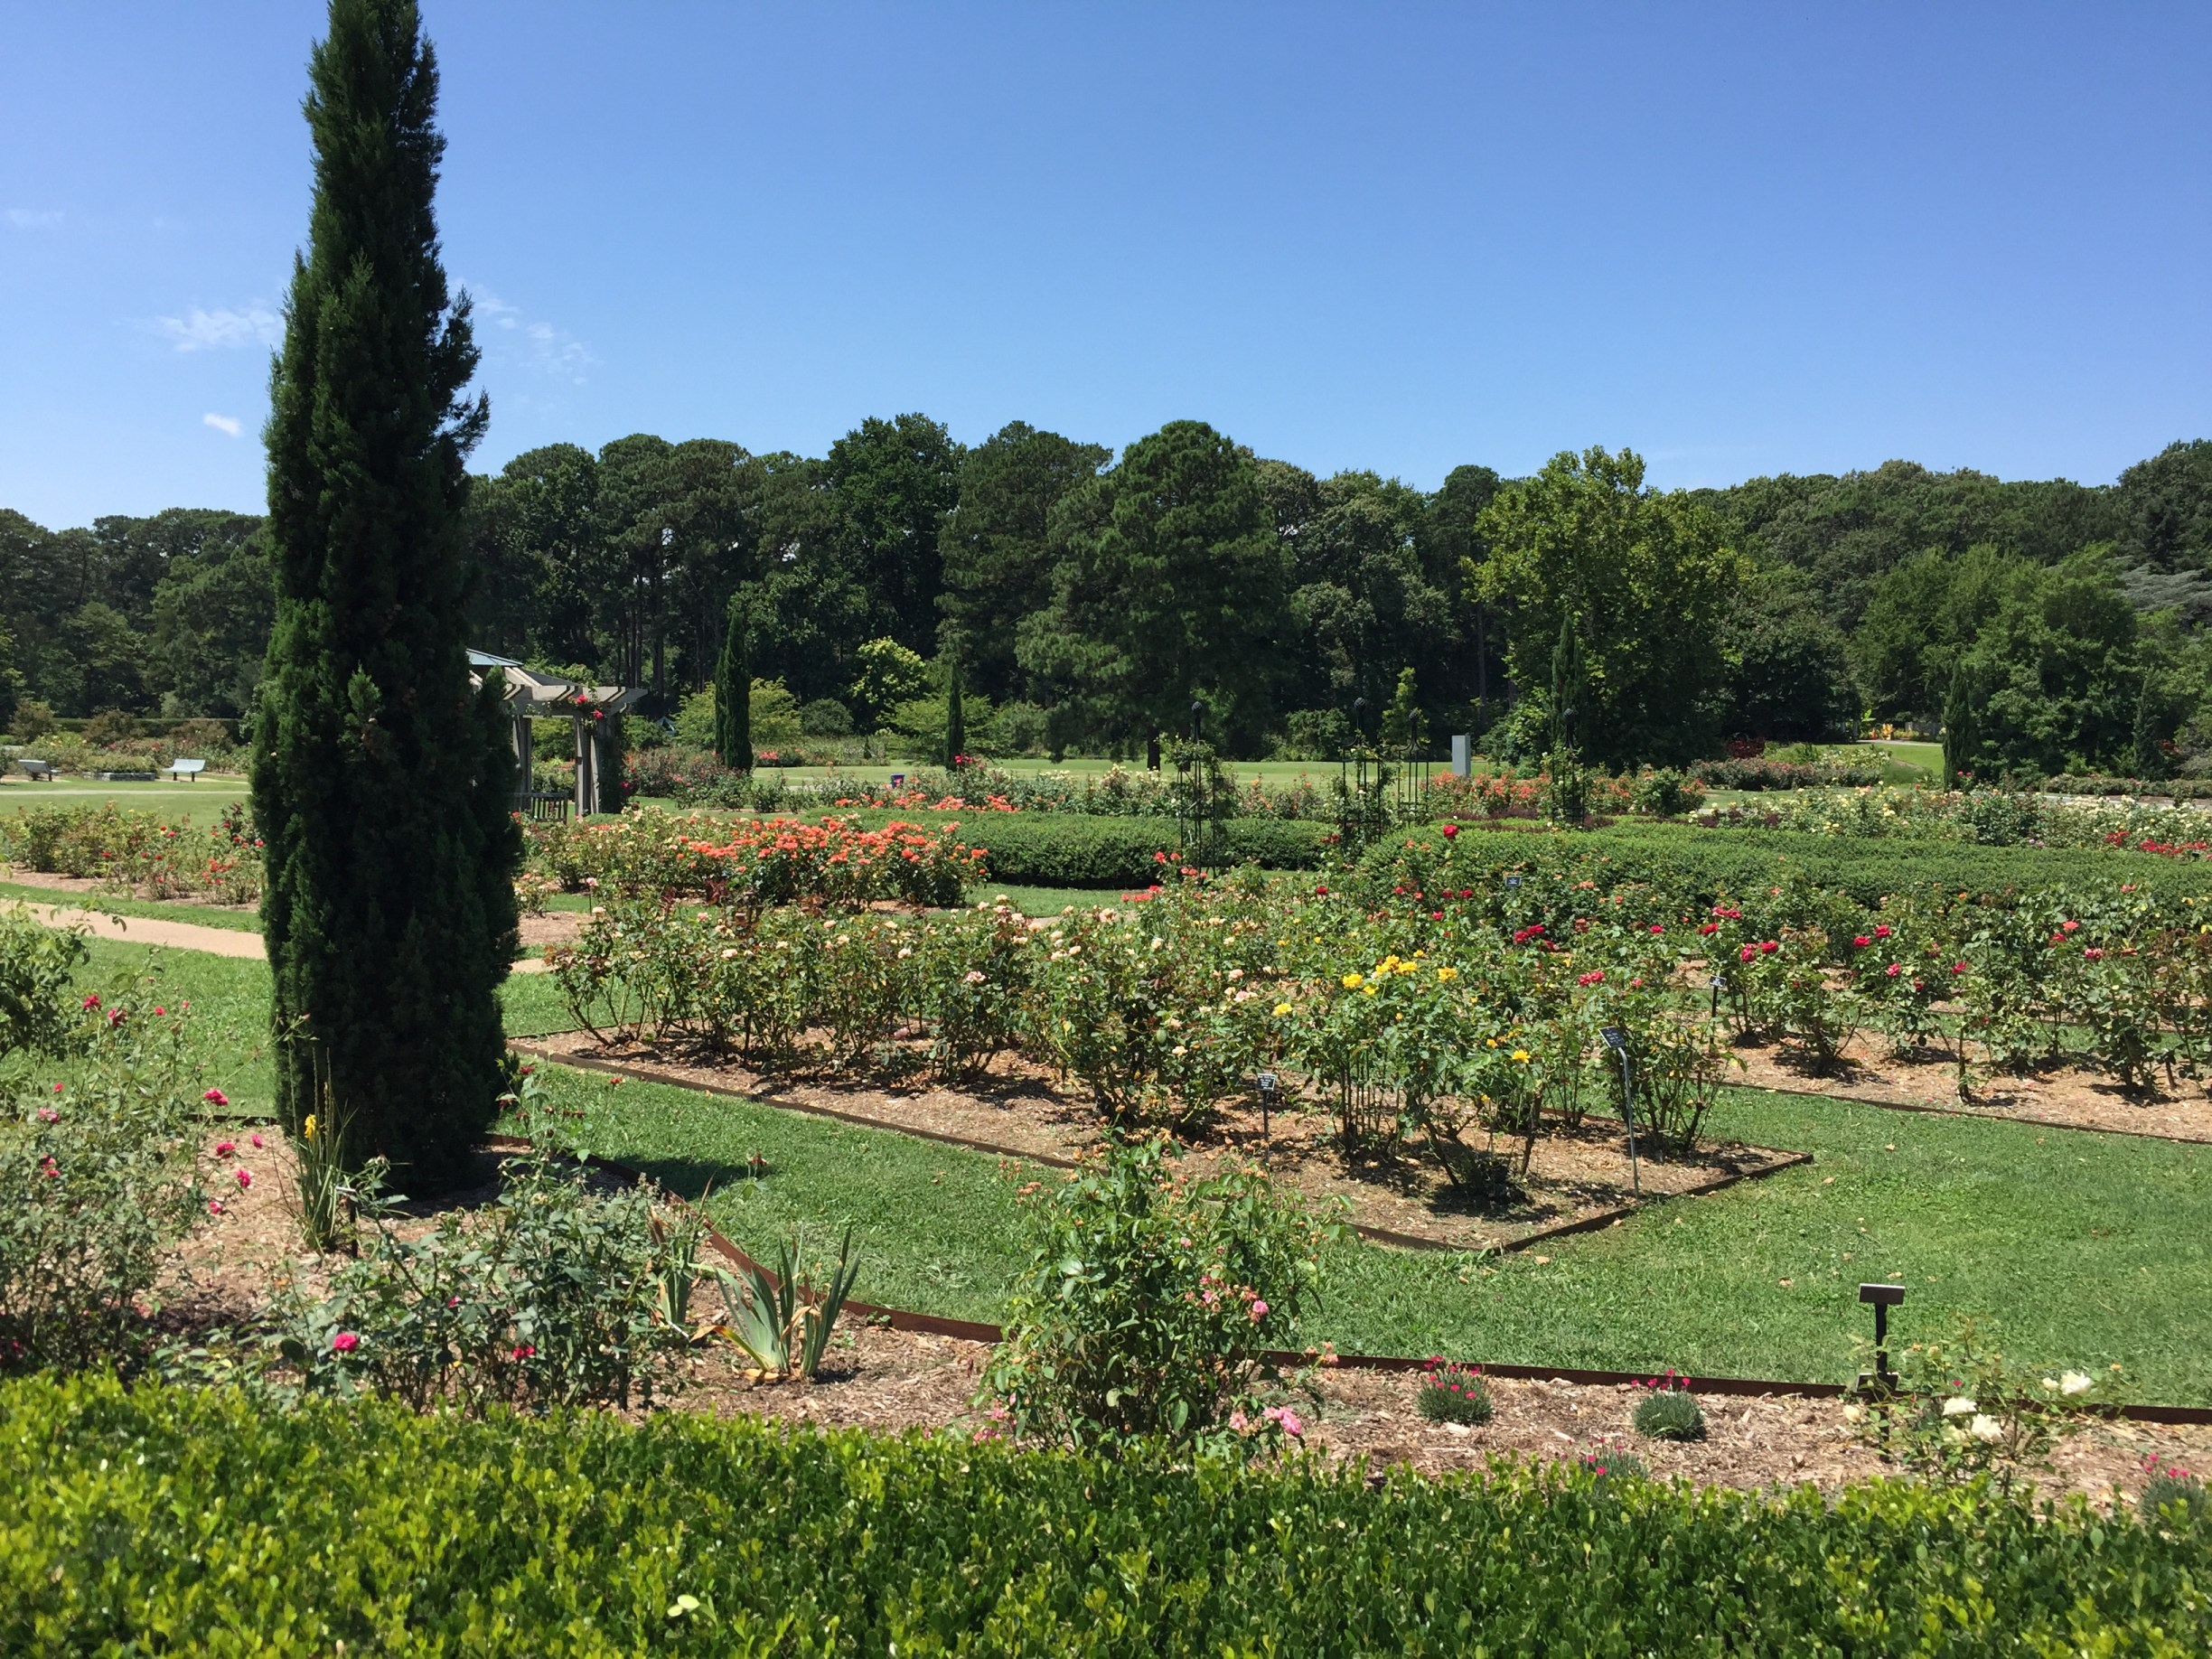 View from the border of the Bicentennial Rose Garden. Photo © 2018 Elaine Mills.